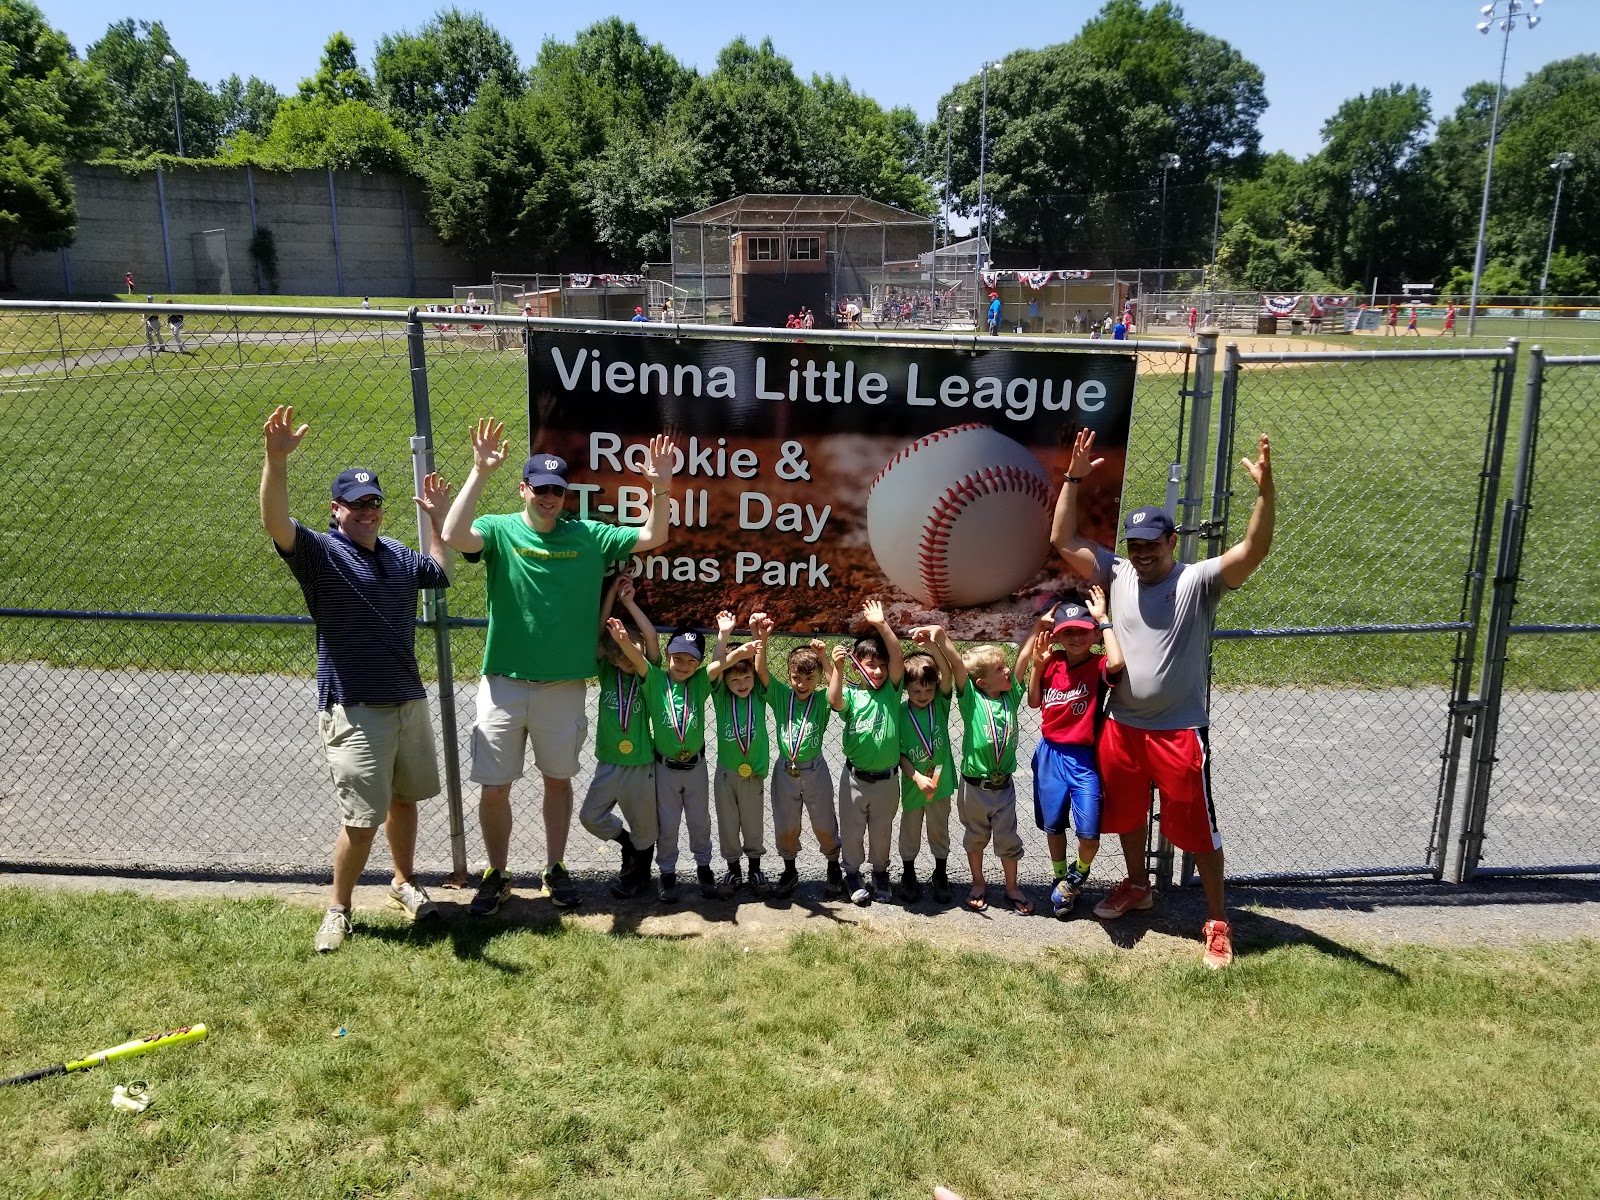 Vienna Little League Rookie and Tee Ball Day at Yeonas Park